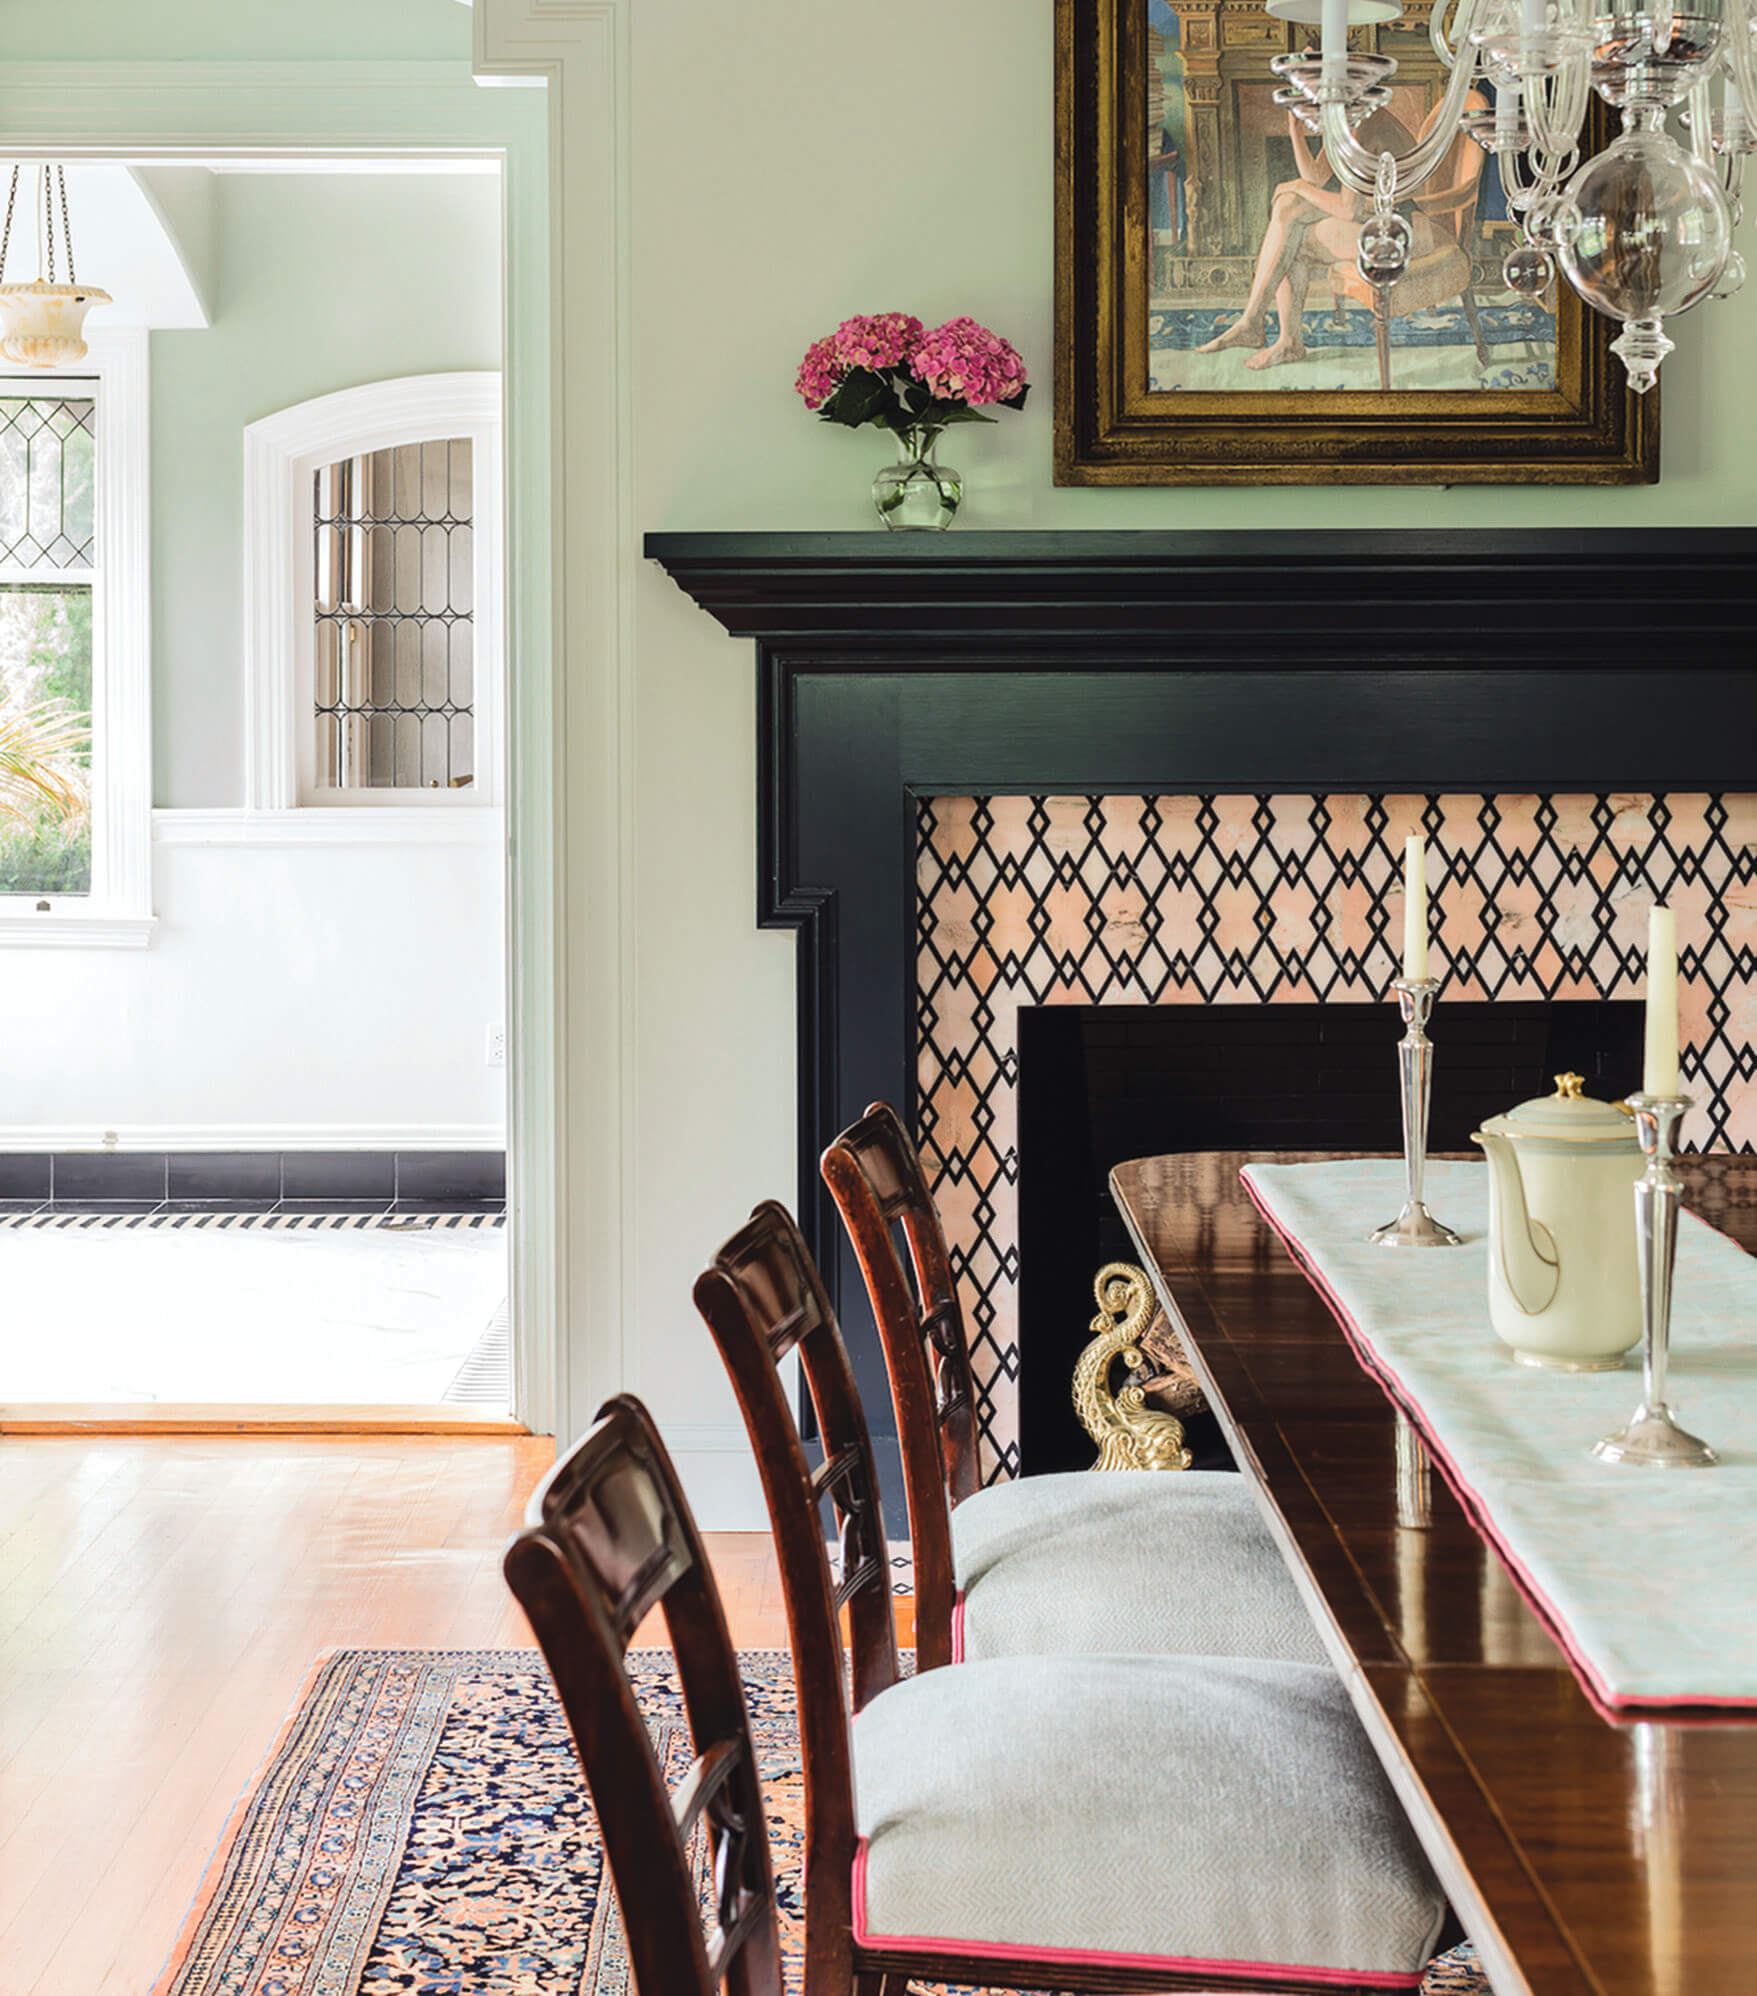 Walls have been beautifully restored in this home that was suffering from paint defects